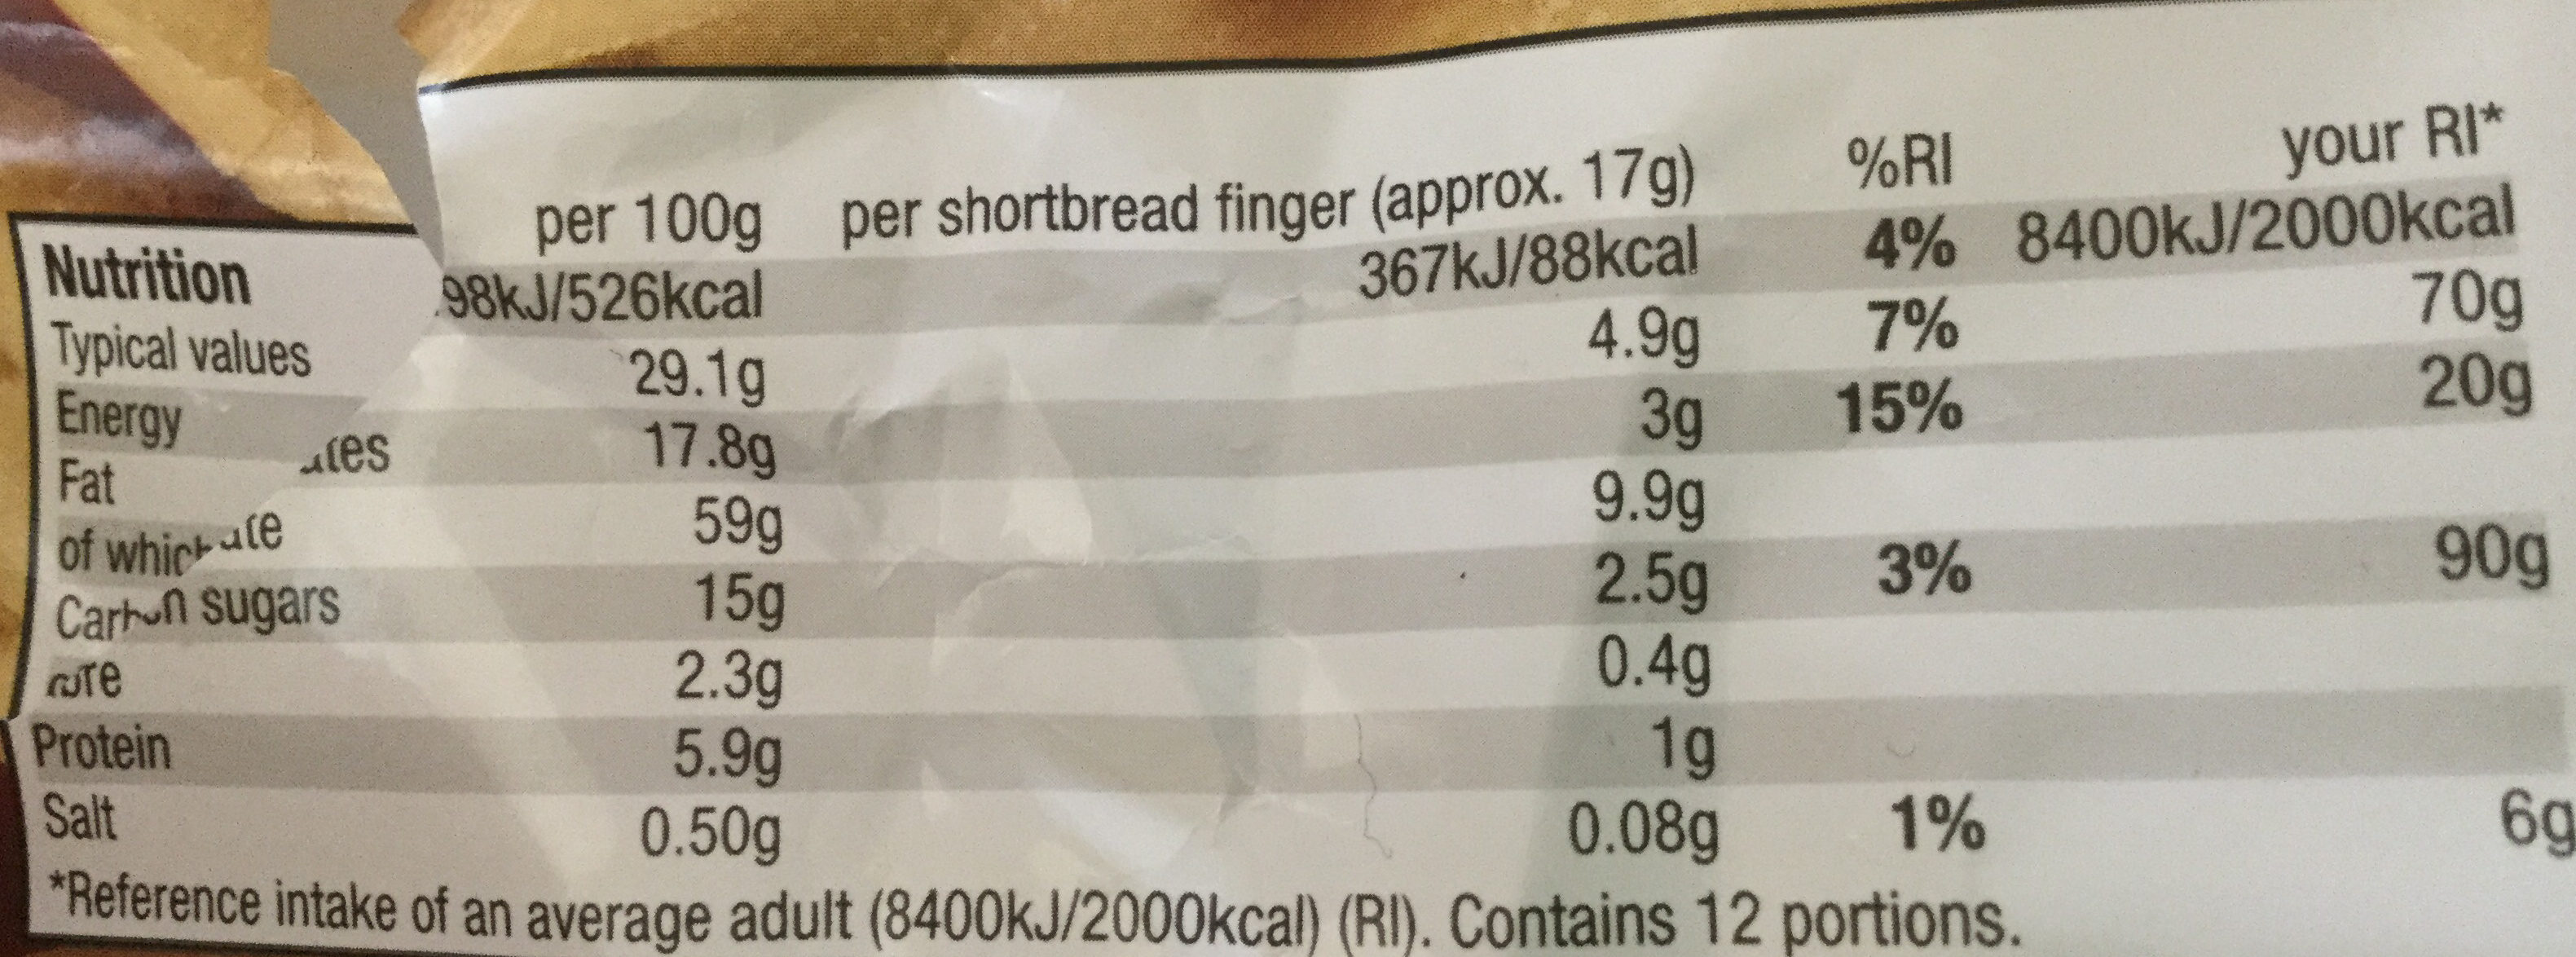 All Butter Shortbread Fingers - Nutrition facts